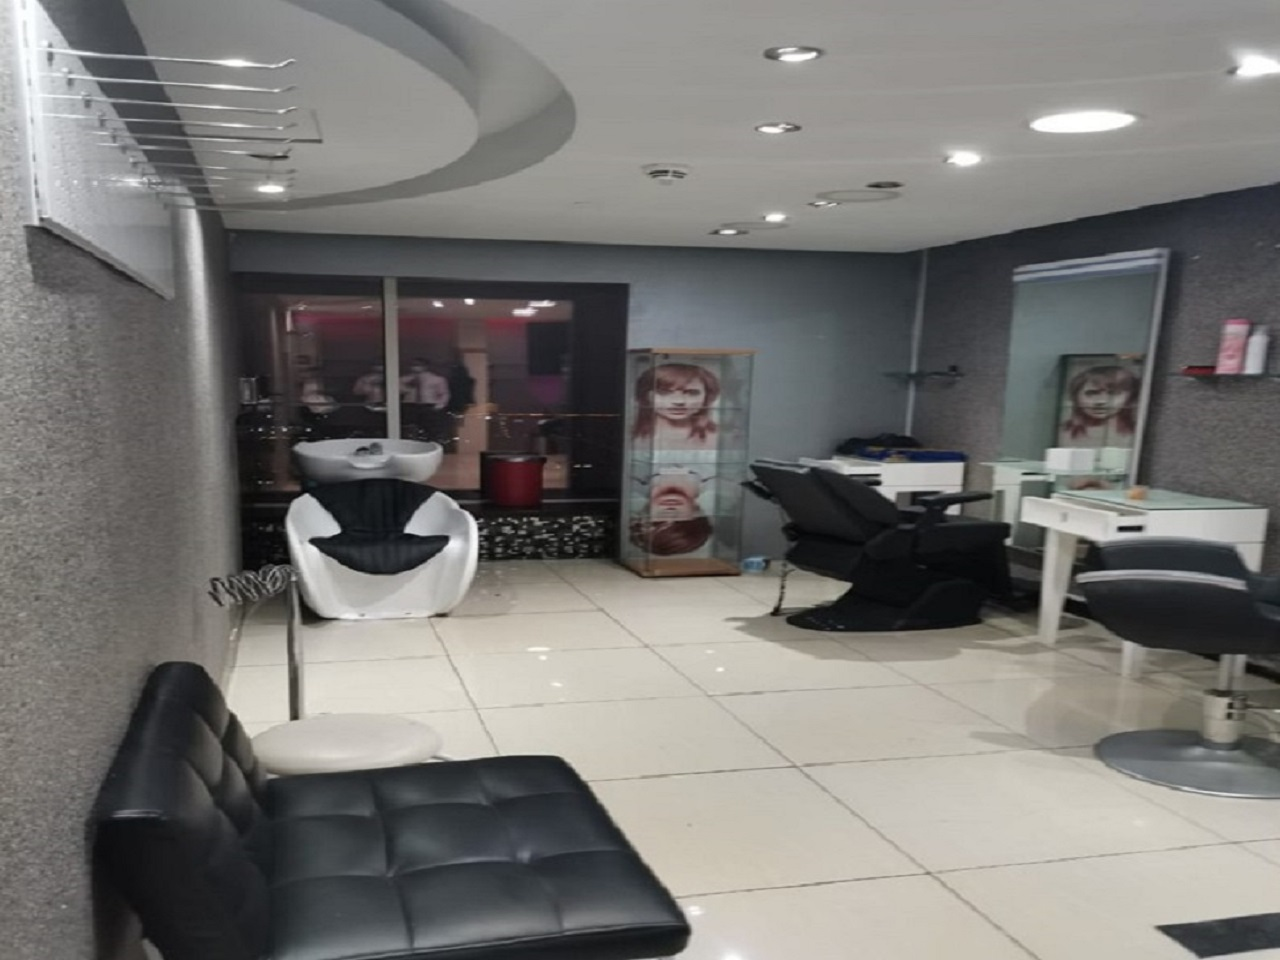 Fully_Equipped_Ladies_Salon_inside_4_Star_Hotel_1612202051843